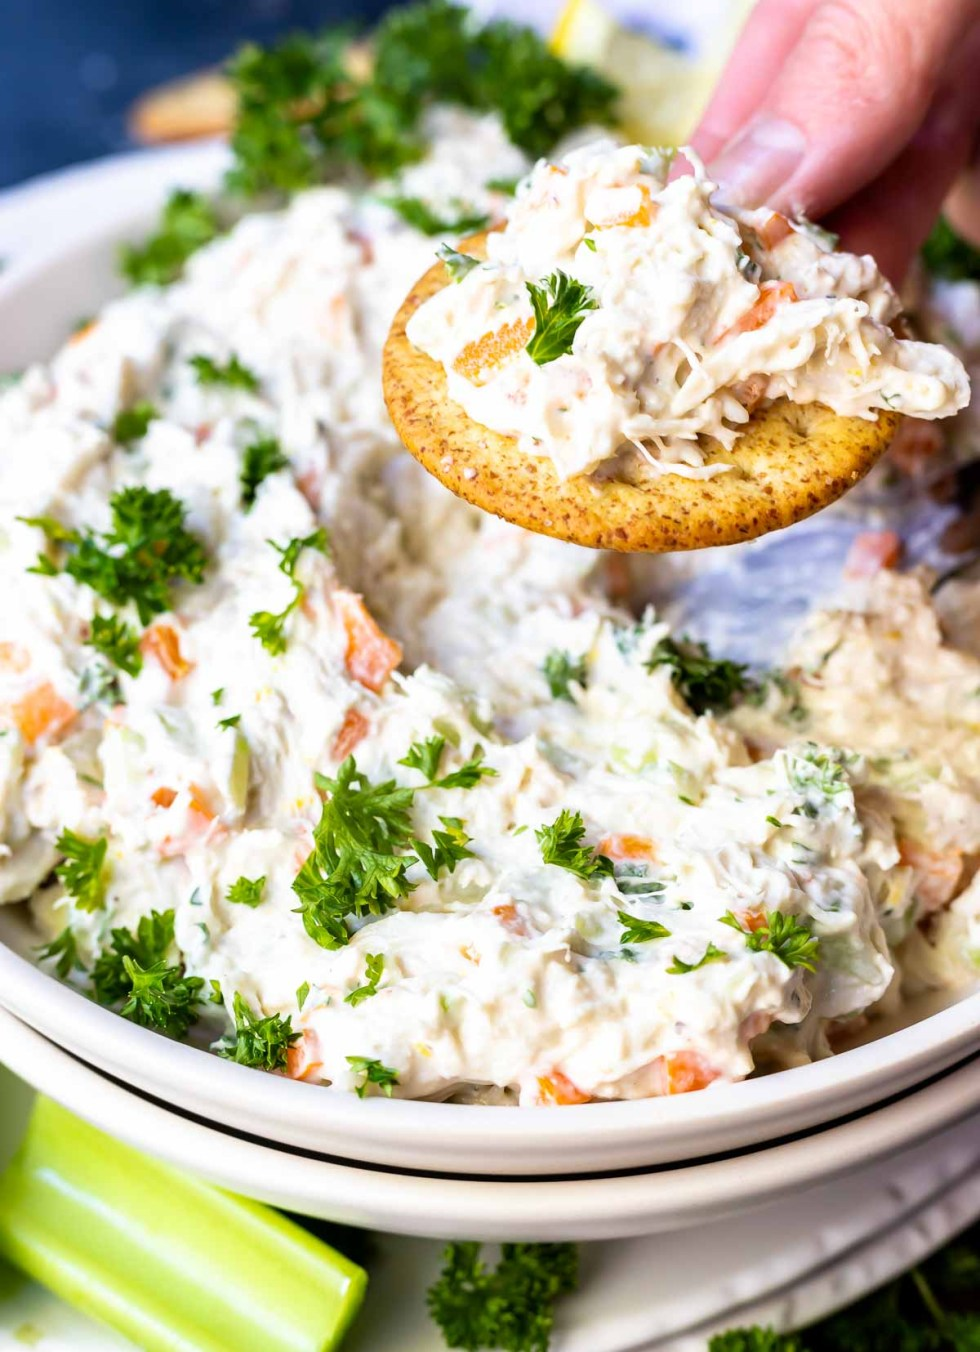 cold crab dip on top of a cracker